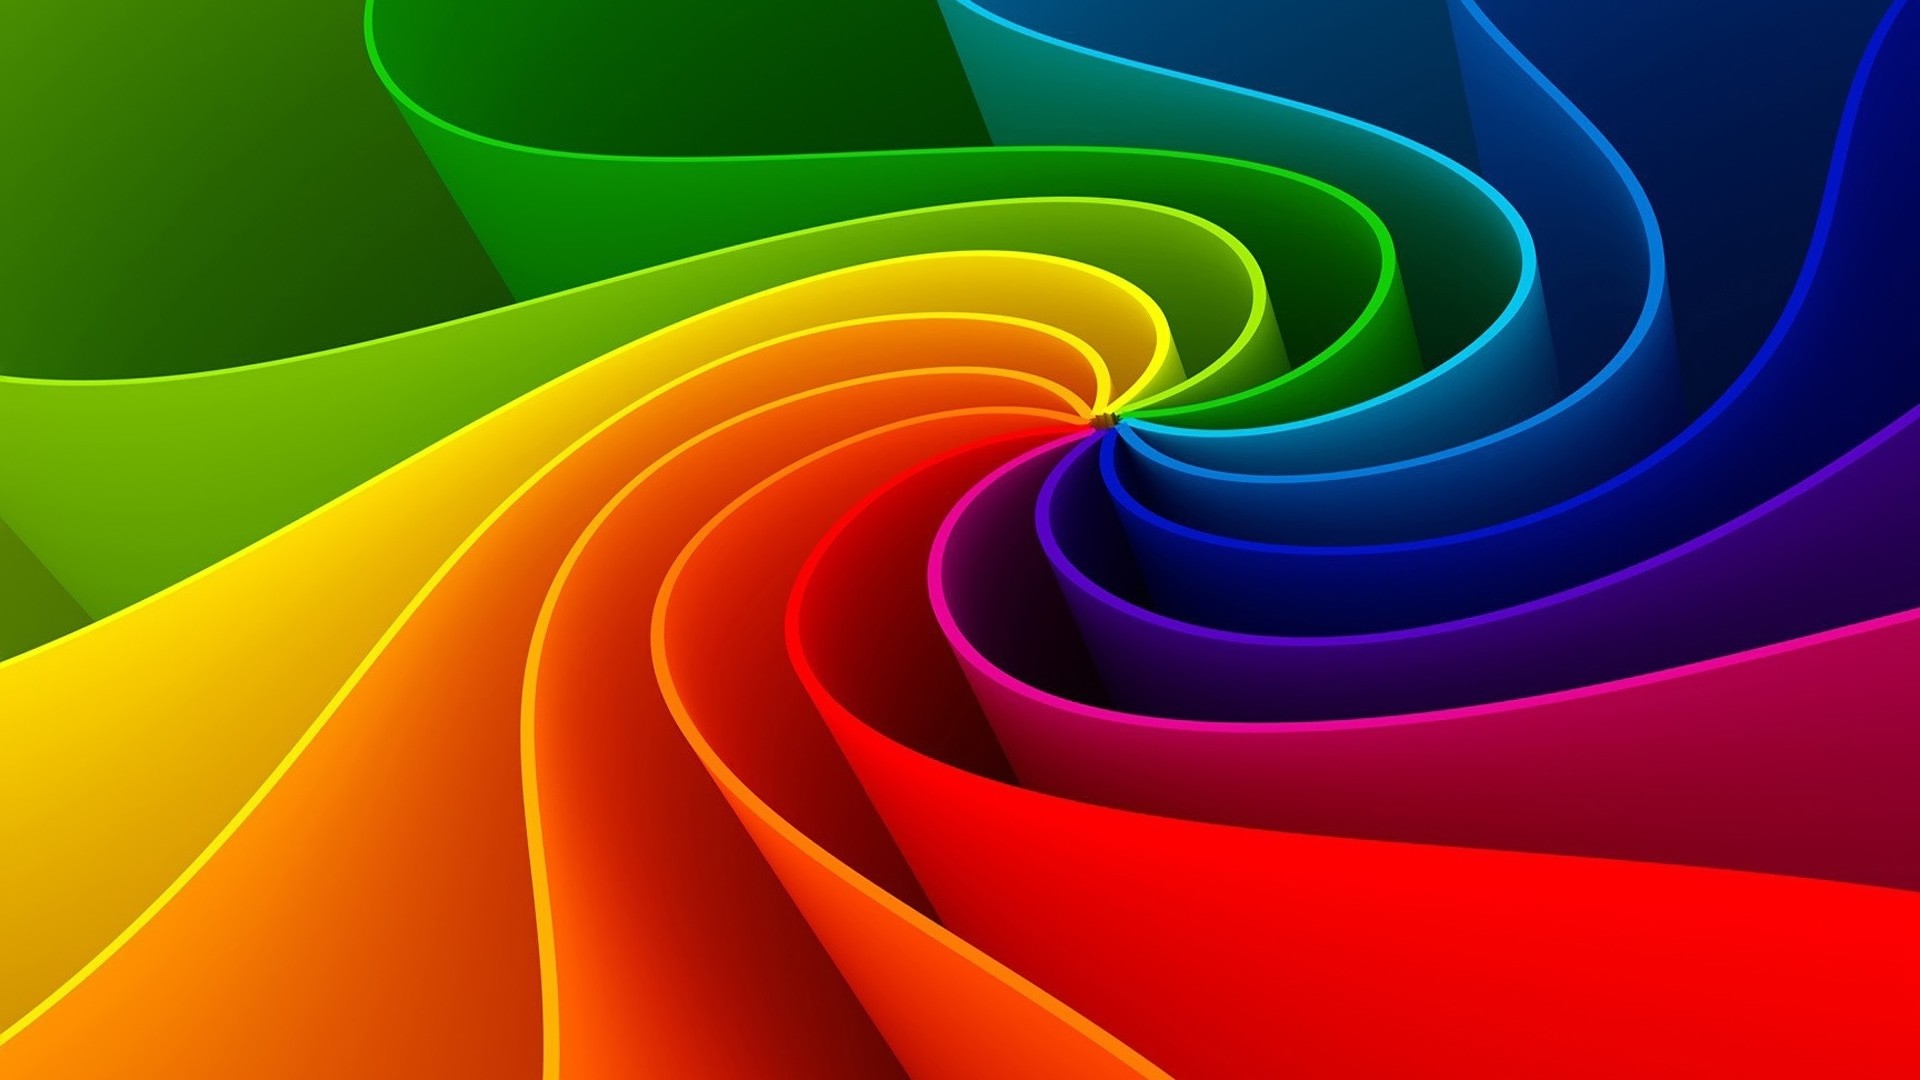 Abstract Rainbows, Rainbows Spirals, Google Search, Rainbows Wallpapers